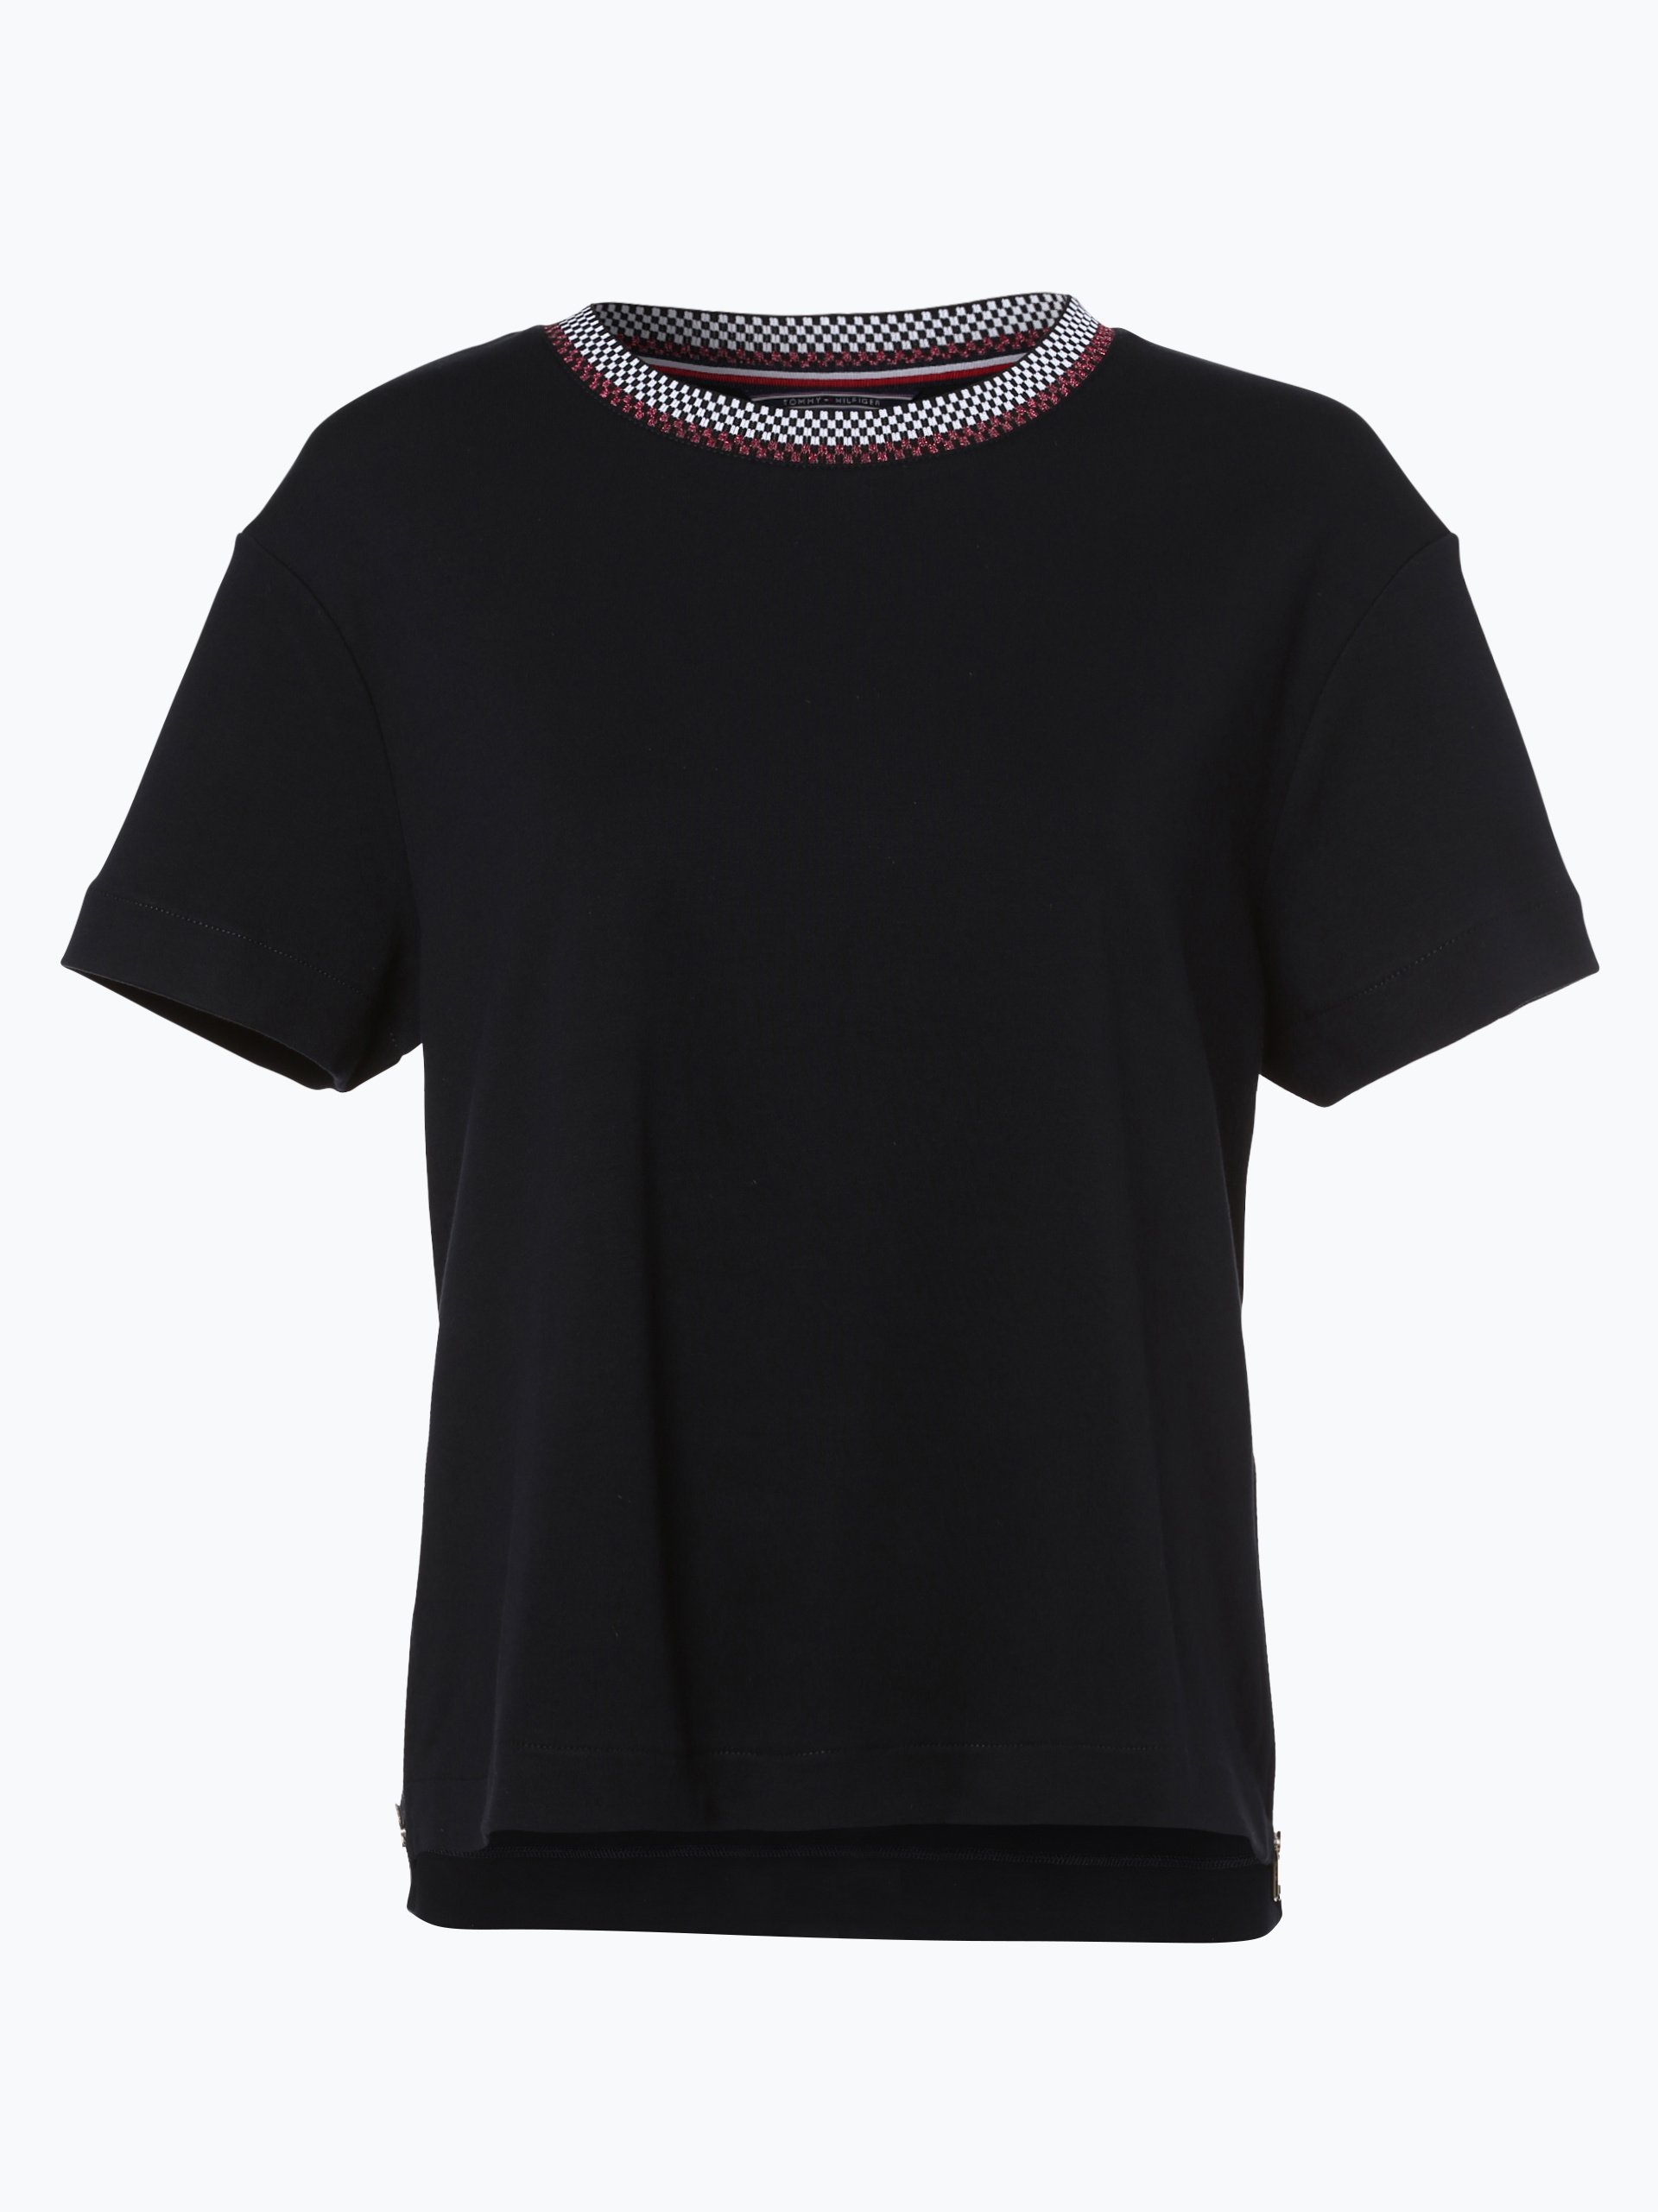 tommy hilfiger damen t shirt schwarz uni online kaufen. Black Bedroom Furniture Sets. Home Design Ideas